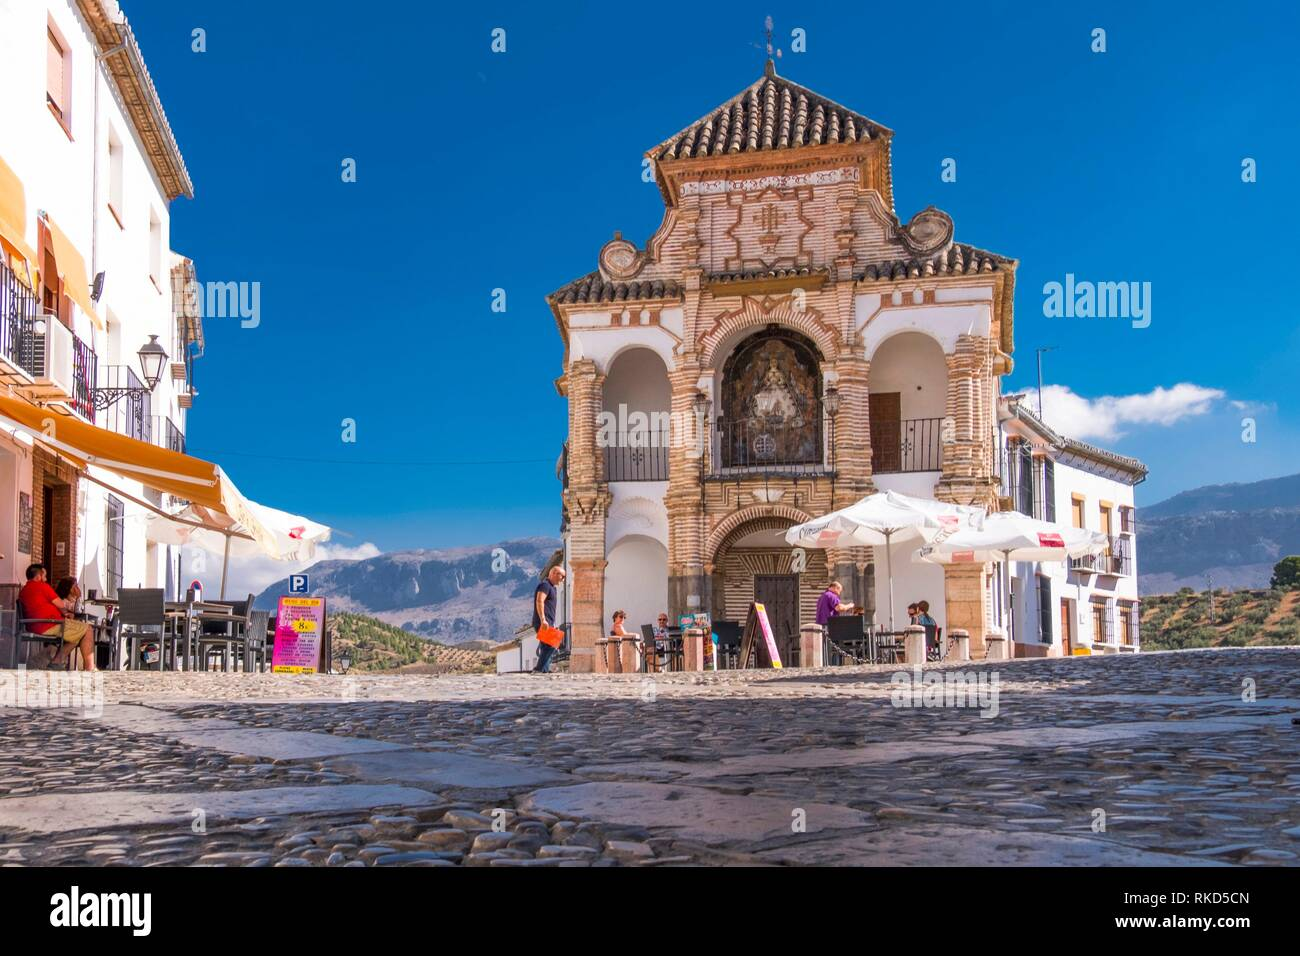 Spain, Andalusia, Malaga Province, ''El Portichuelo'' at Antequera. - Stock Image